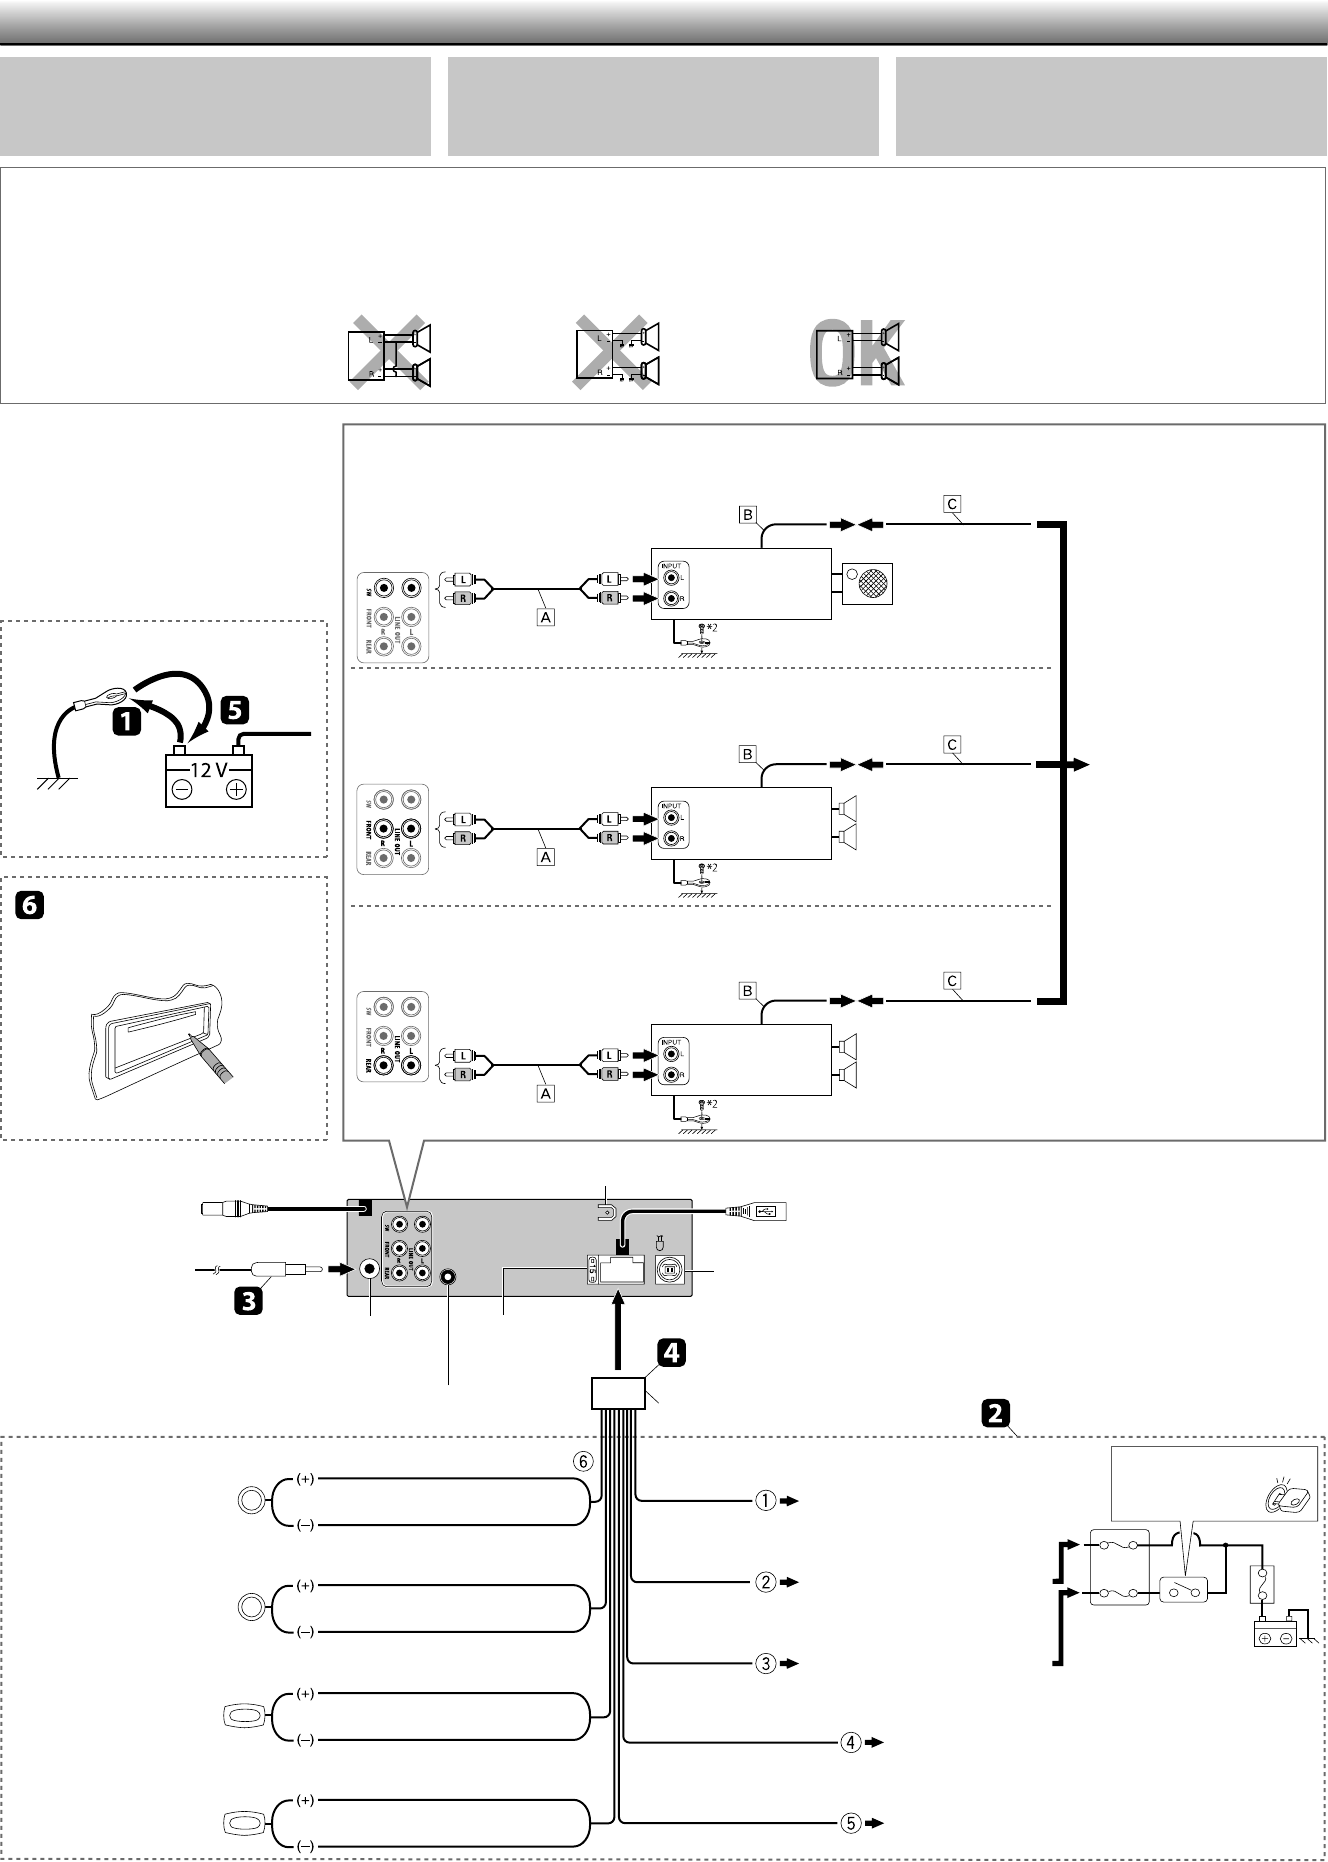 jvc model kd sr40 wiring diagram jvc image wiring jvc kd sr40 wiring diagram jvc image wiring diagram on jvc model kd sr40